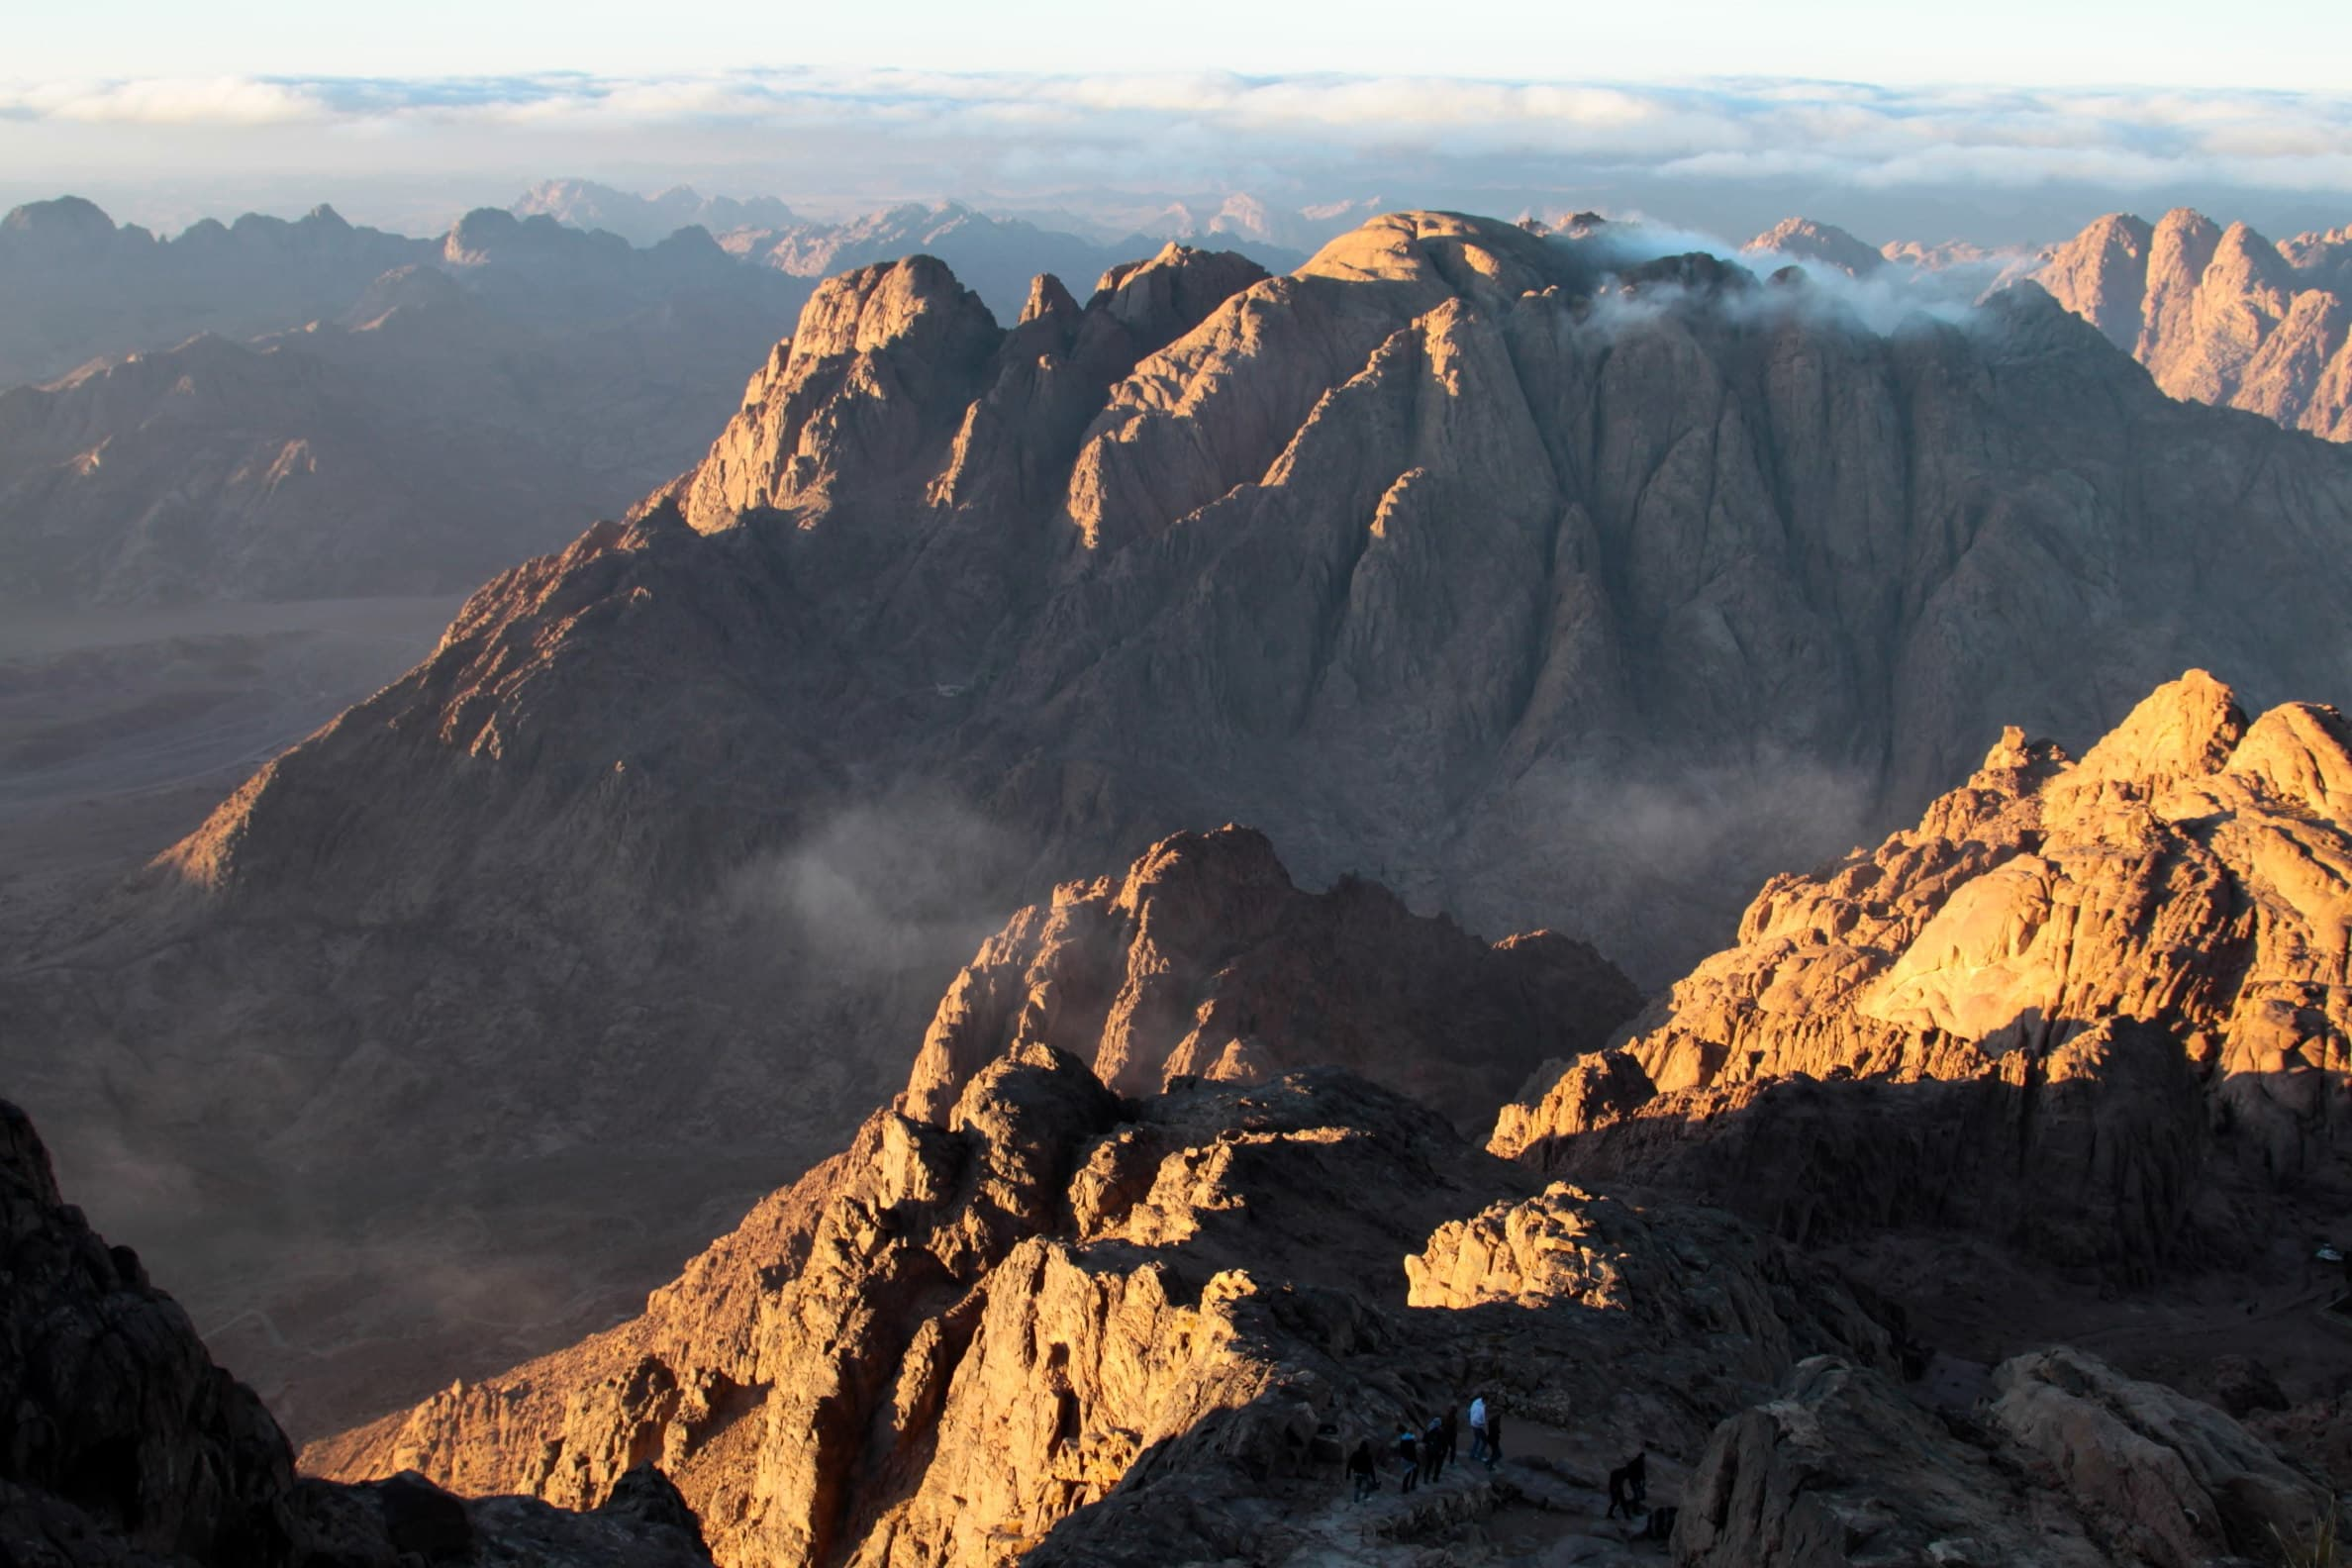 Mount Sinai HD Wallpaper for Desktop